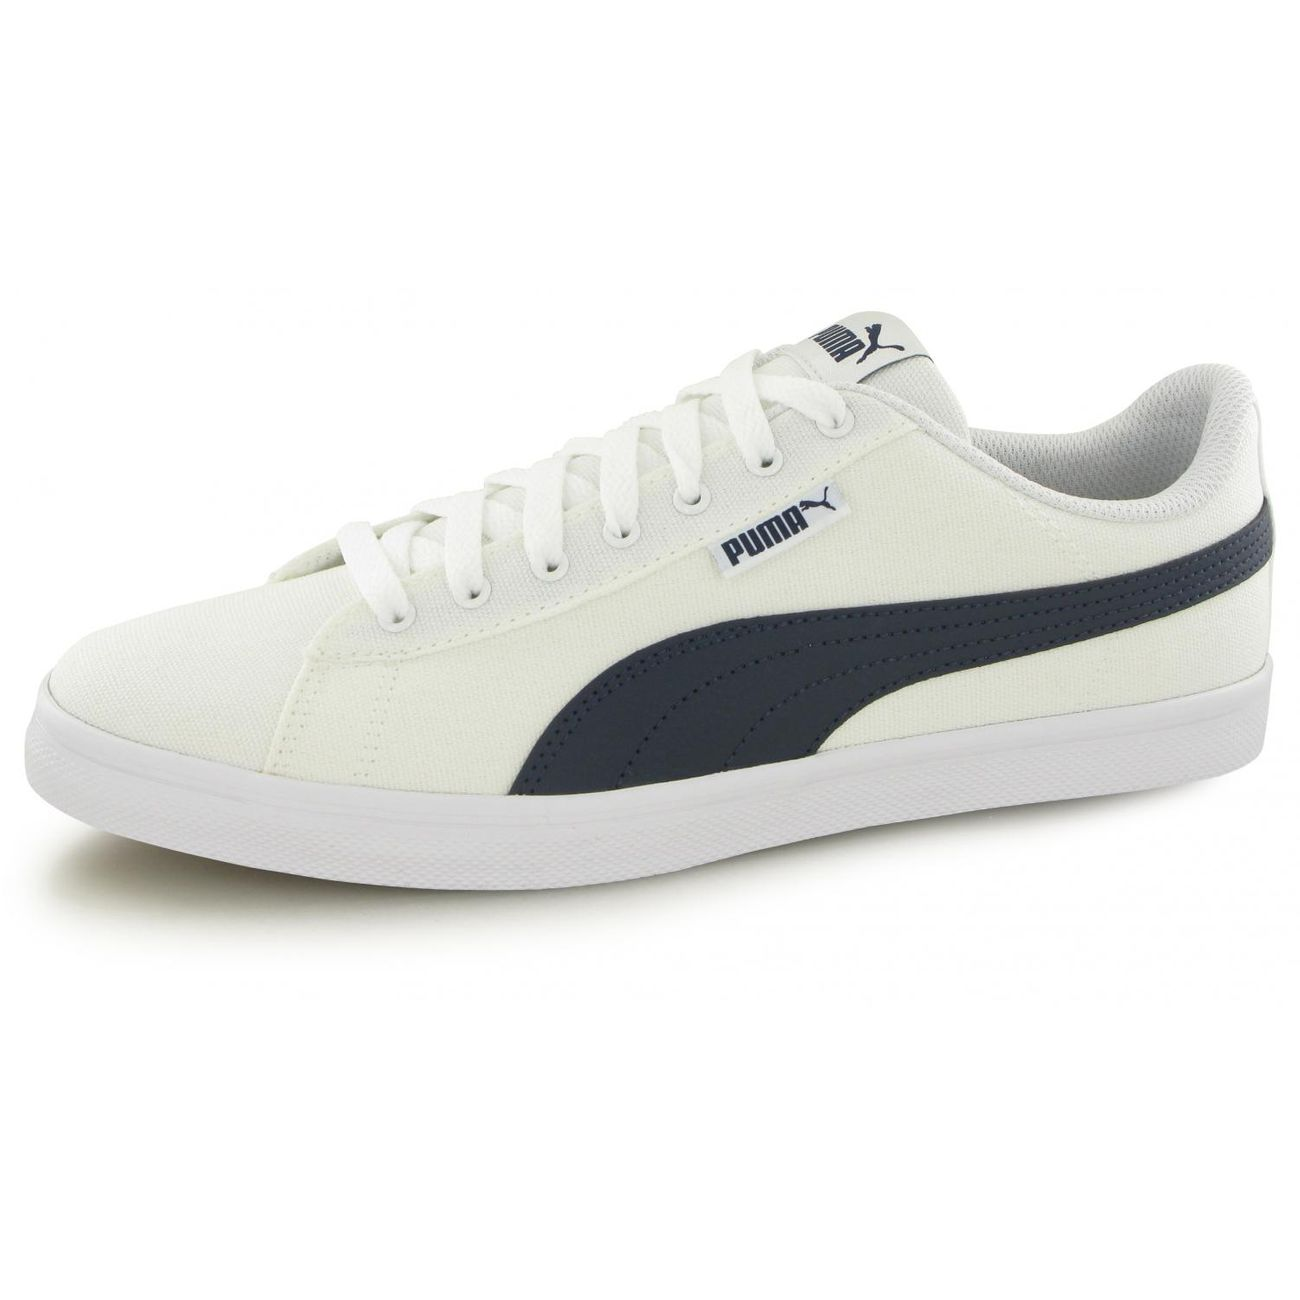 Baskets Canvas Urban Plus Puma ModeLifestyle Homme vNwm8n0